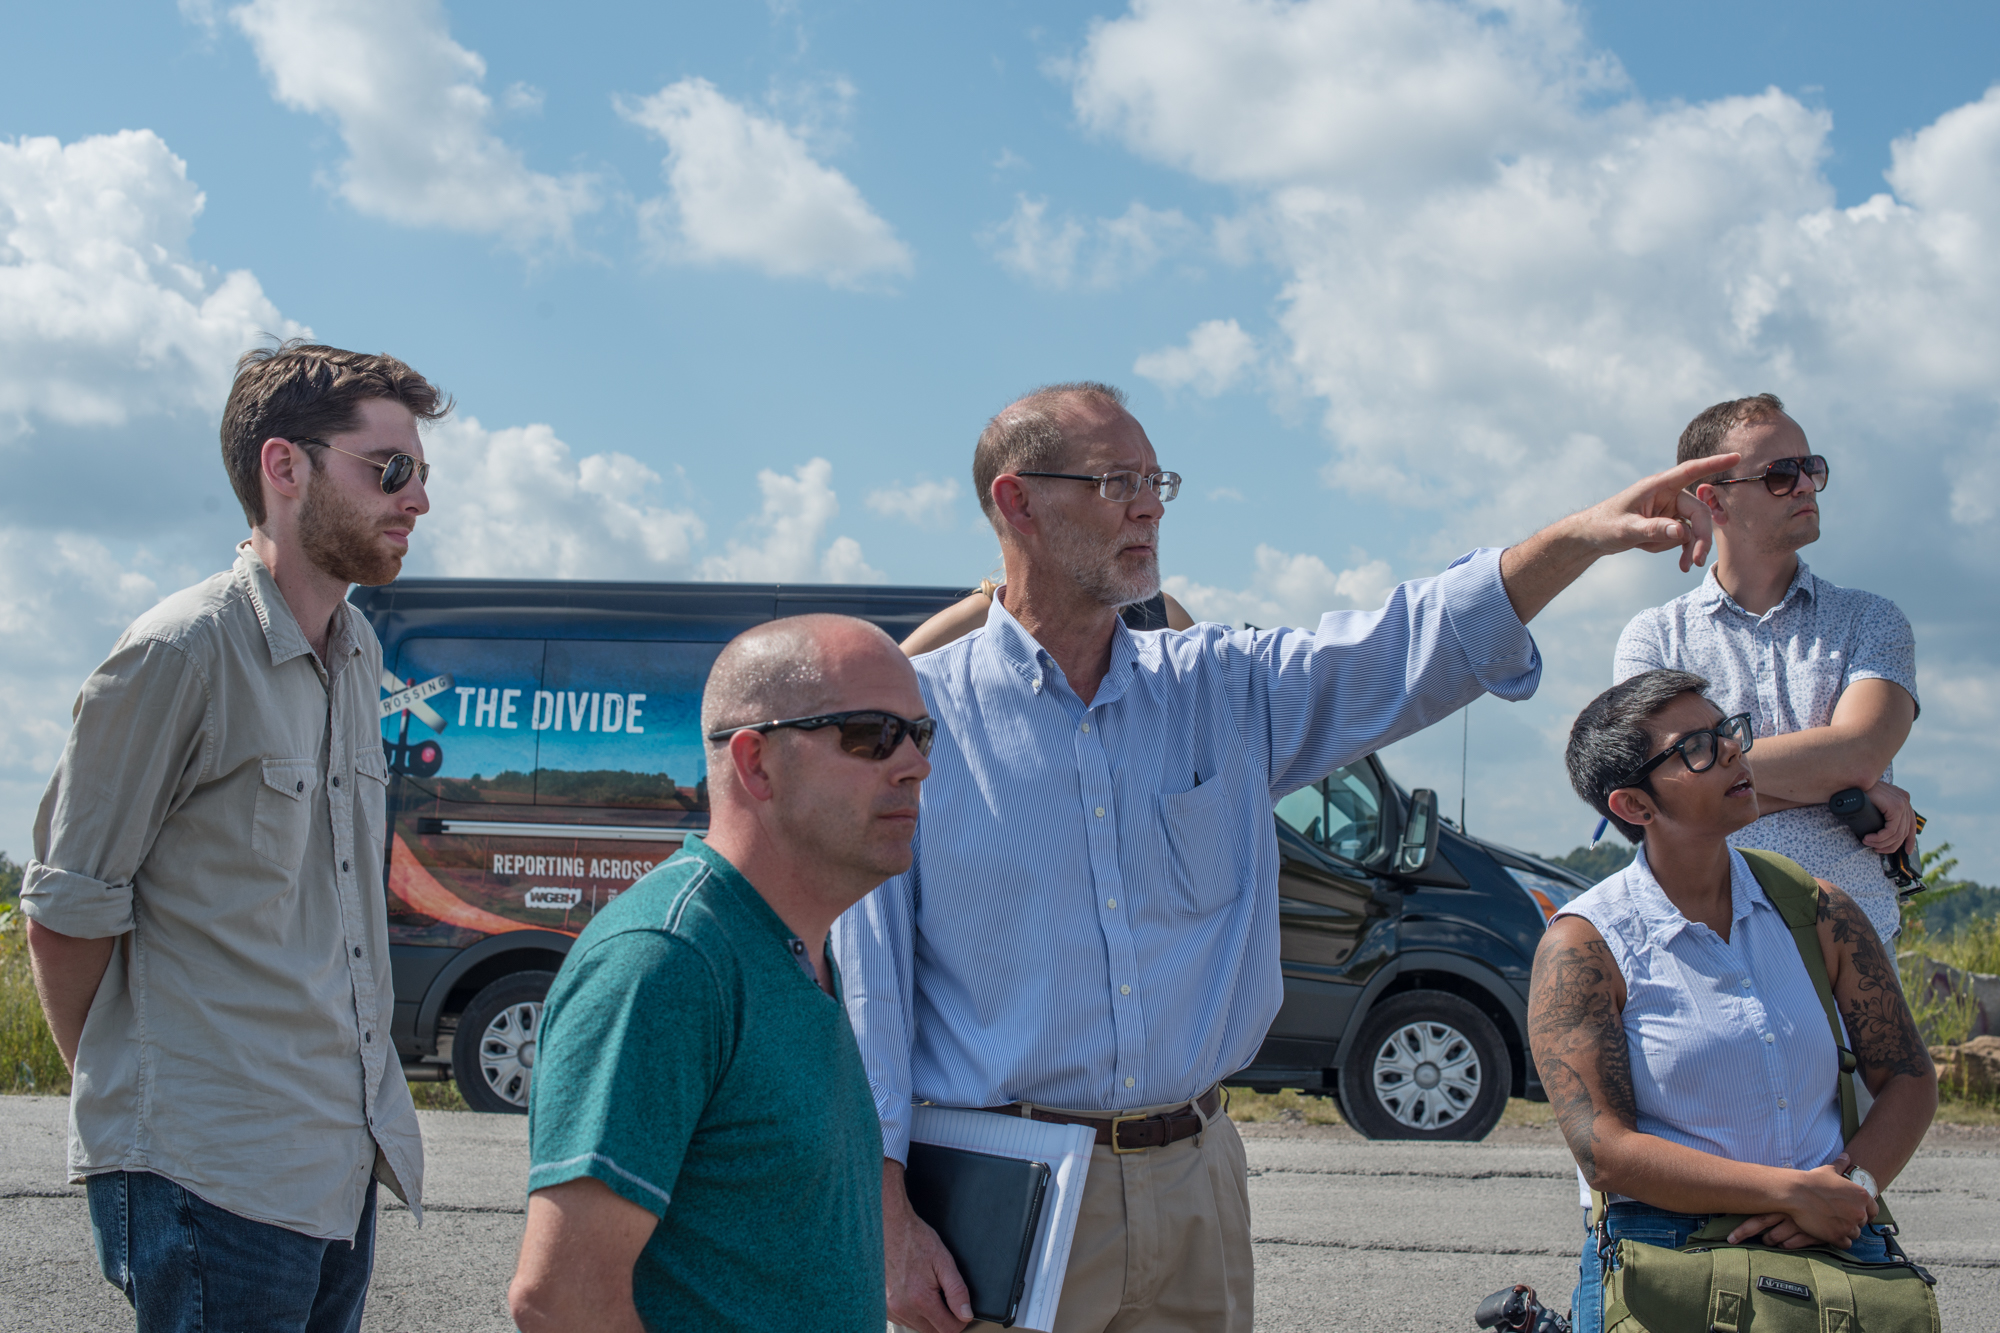 Bill Estep, (pointing, center) facilitated a visit to the site of a former strip mine. Also pictured, from left: Eric Bosco, former coal worker Kenny Stanley, Qainat Khan and Gabriel Sanchez. (Photo by Ben Brody/GroundTruth)